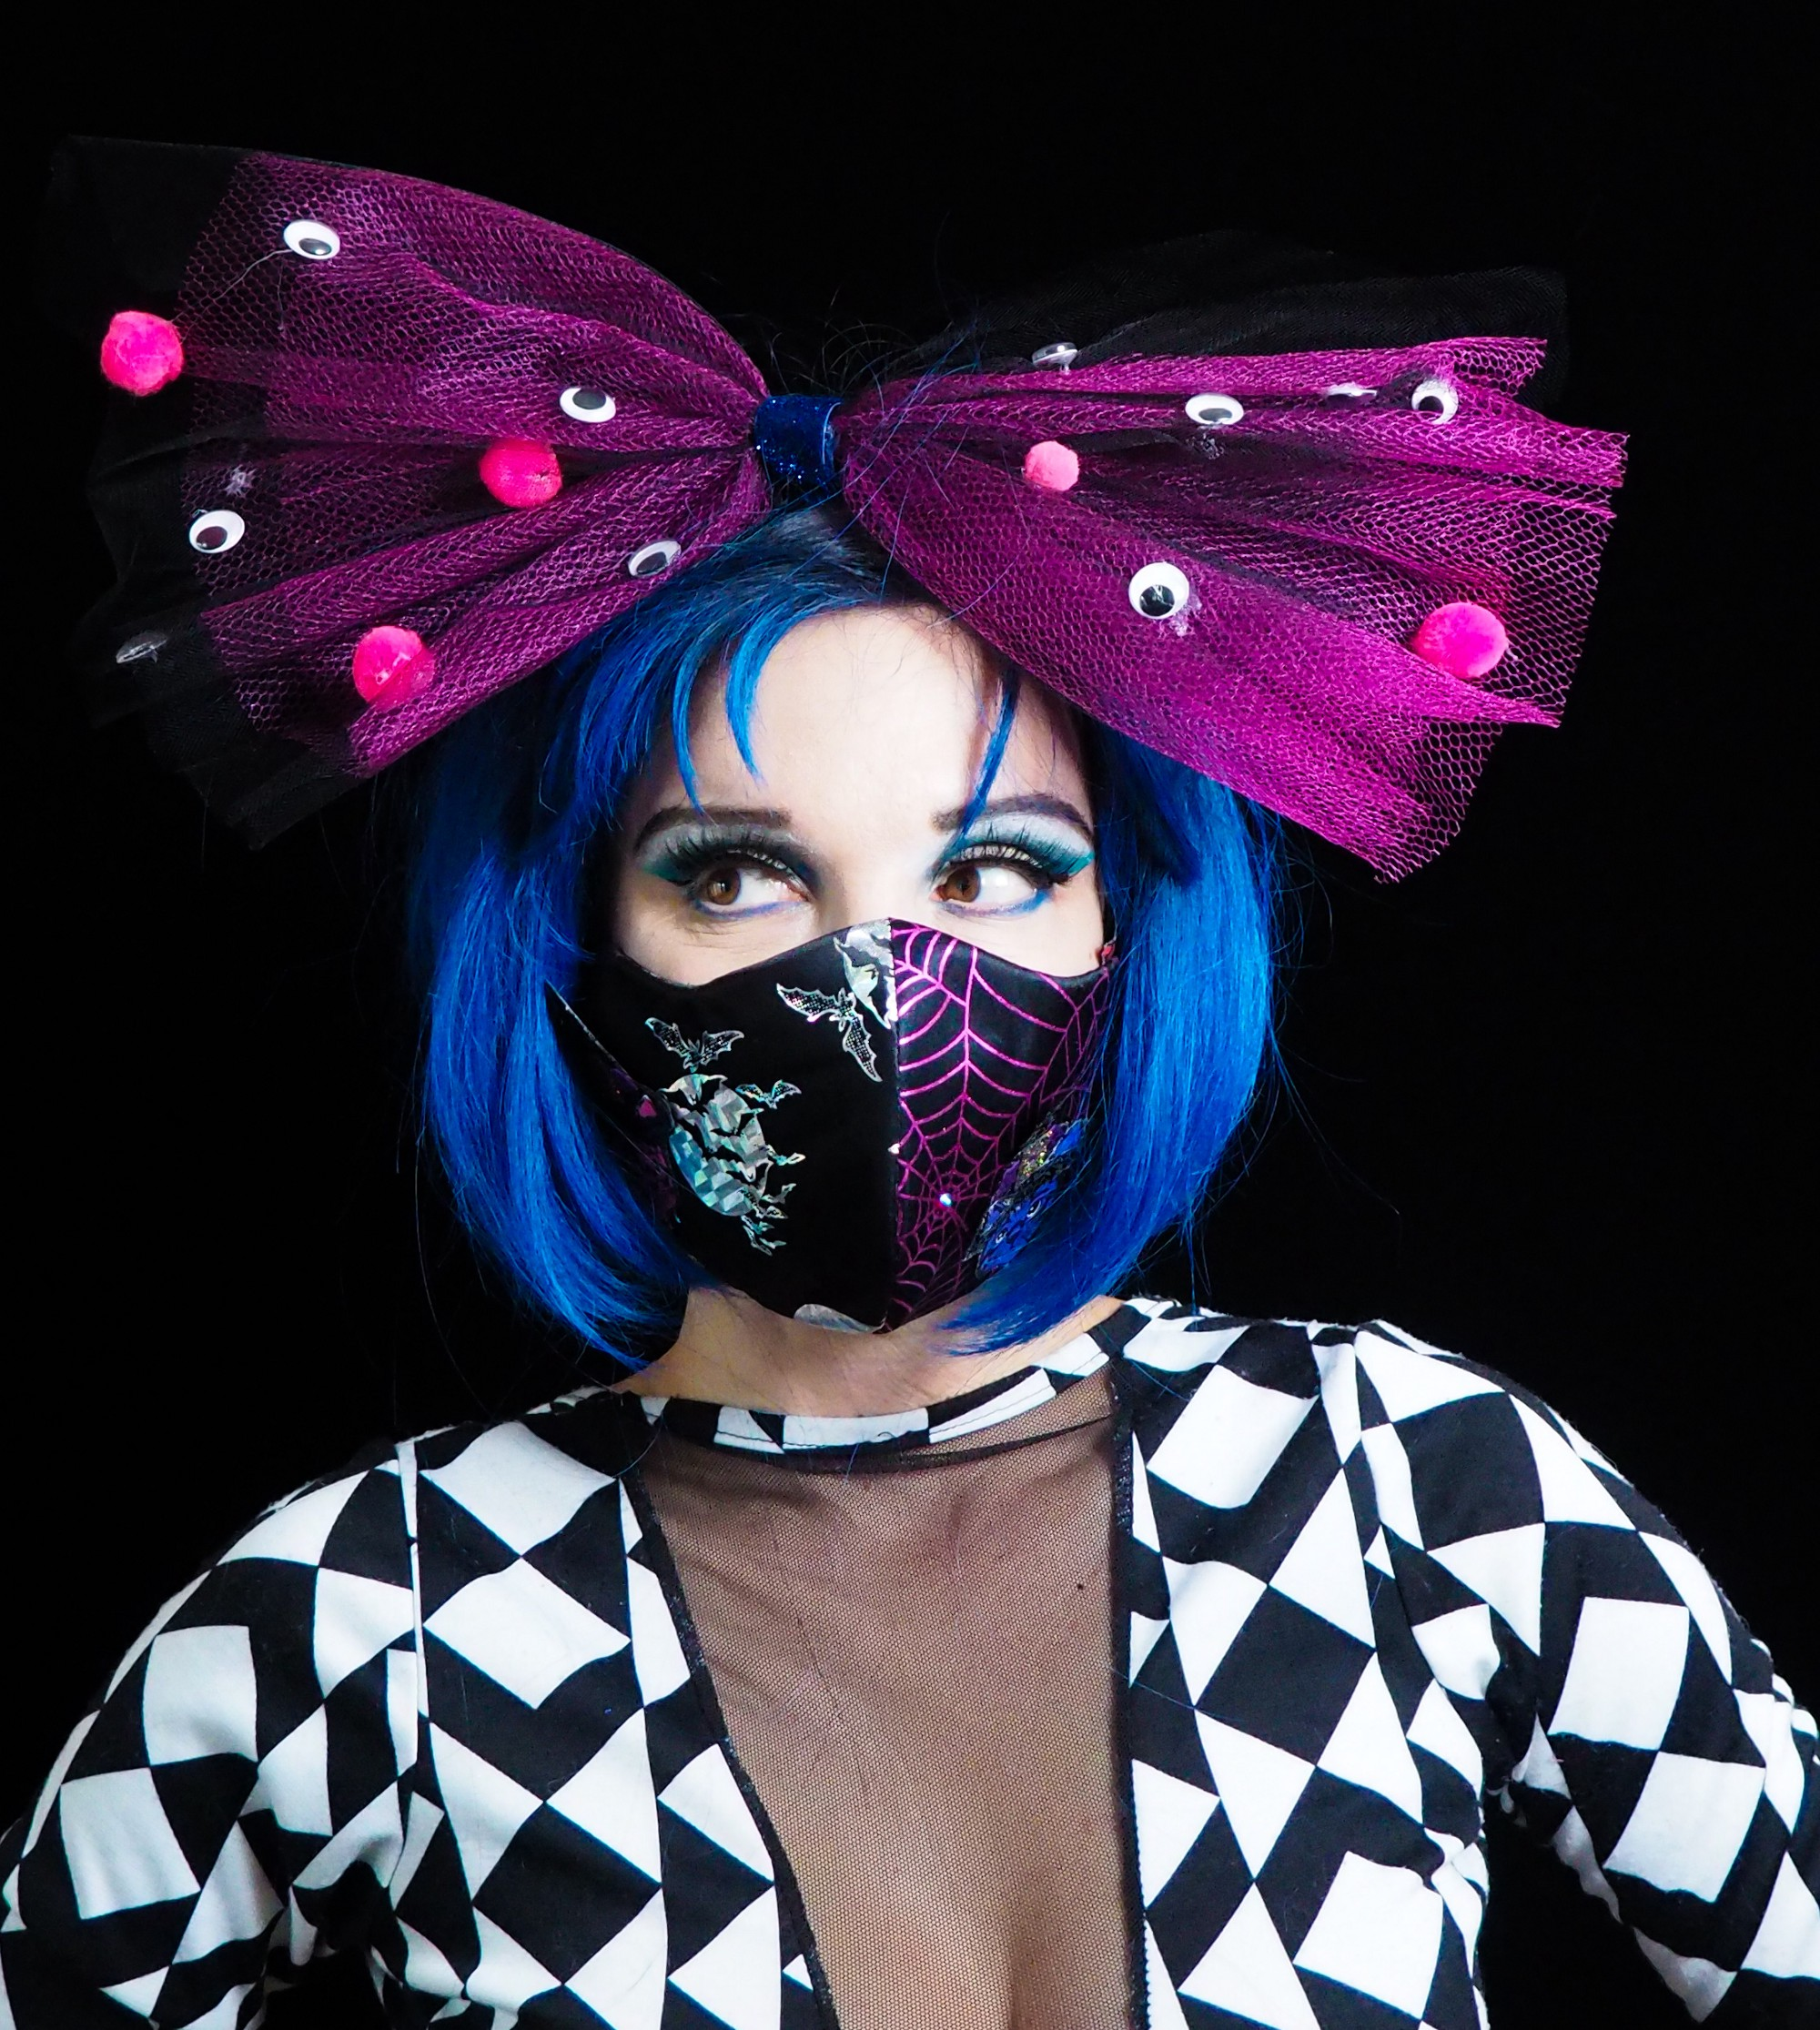 A person with a blue bob haircut wearing a huge purple hairbow and a mask with shiny bats + moons and purple spiderwebs